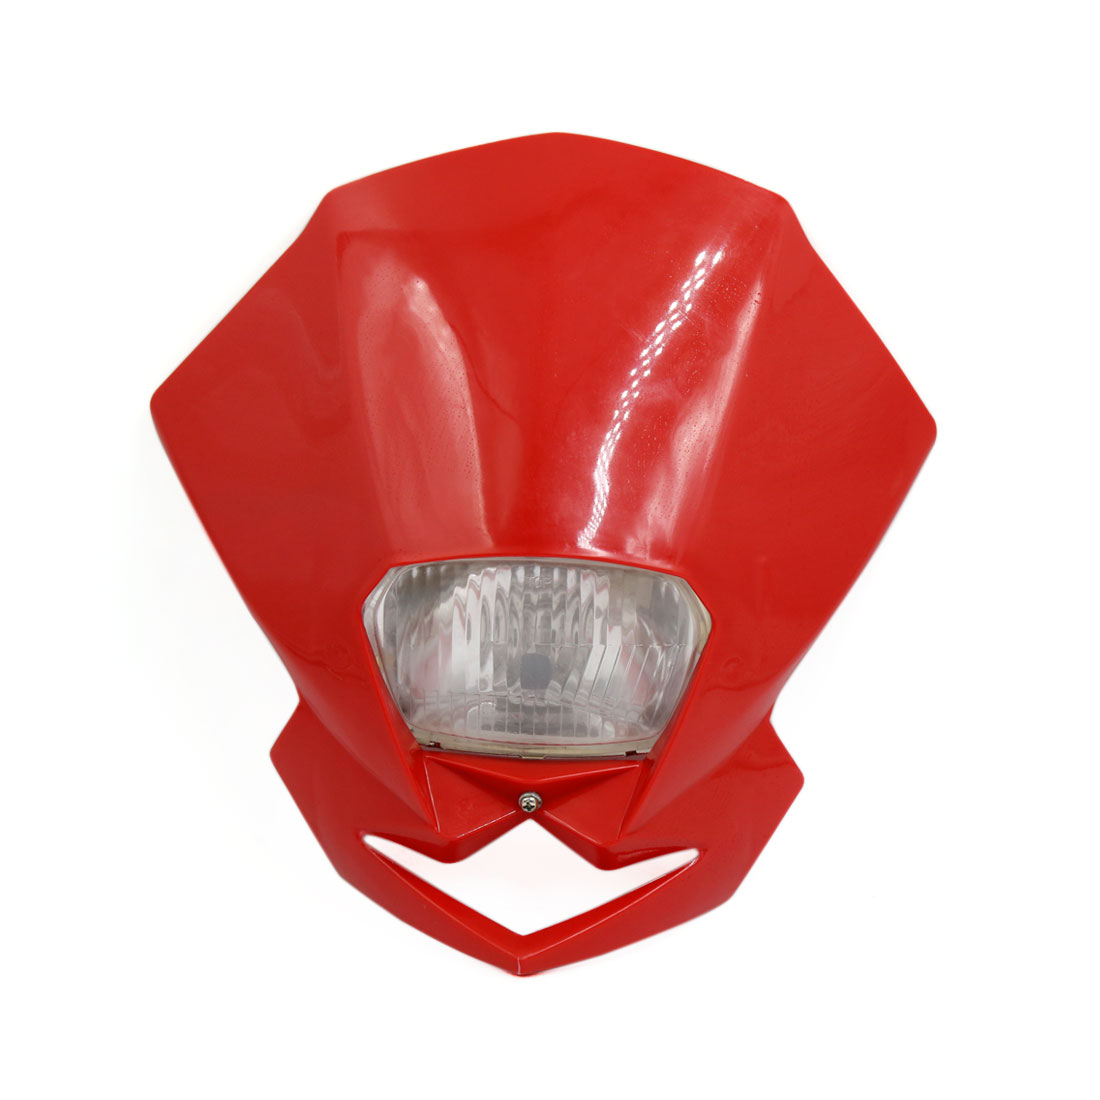 Universal Red Case Motorcycle Street Fighter Headlight Fairing Light Lamp Yellow